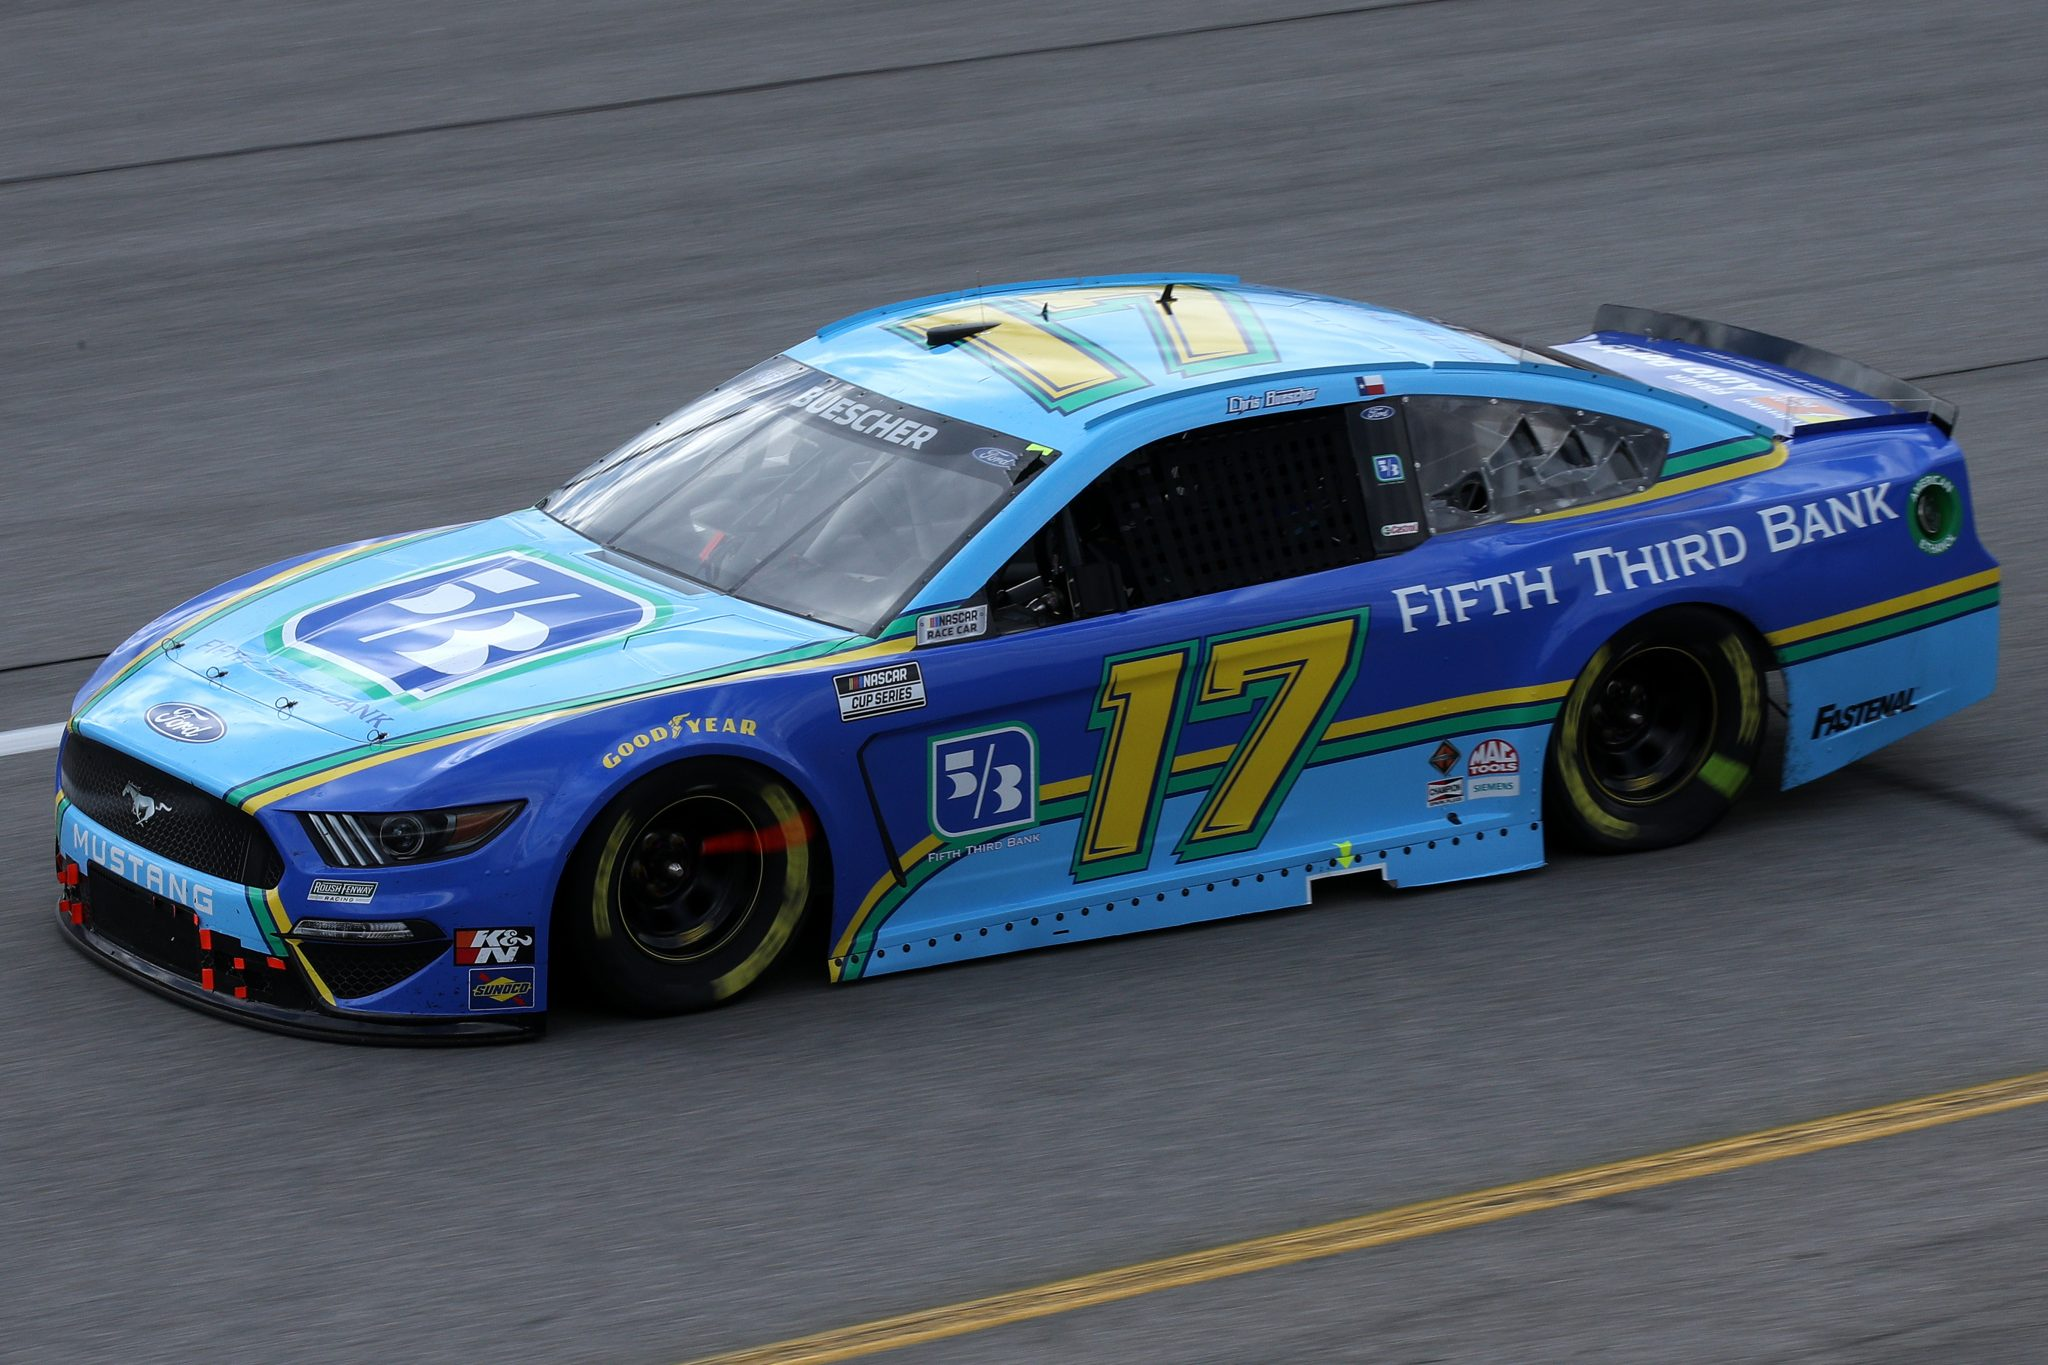 RICHMOND, VIRGINIA - APRIL 18: Chris Buescher, driver of the #17 Fifth Third Bank Ford, drives during the NASCAR Cup Series Toyota Owners 400 at Richmond Raceway on April 18, 2021 in Richmond, Virginia. (Photo by Sean Gardner/Getty Images) | Getty Images